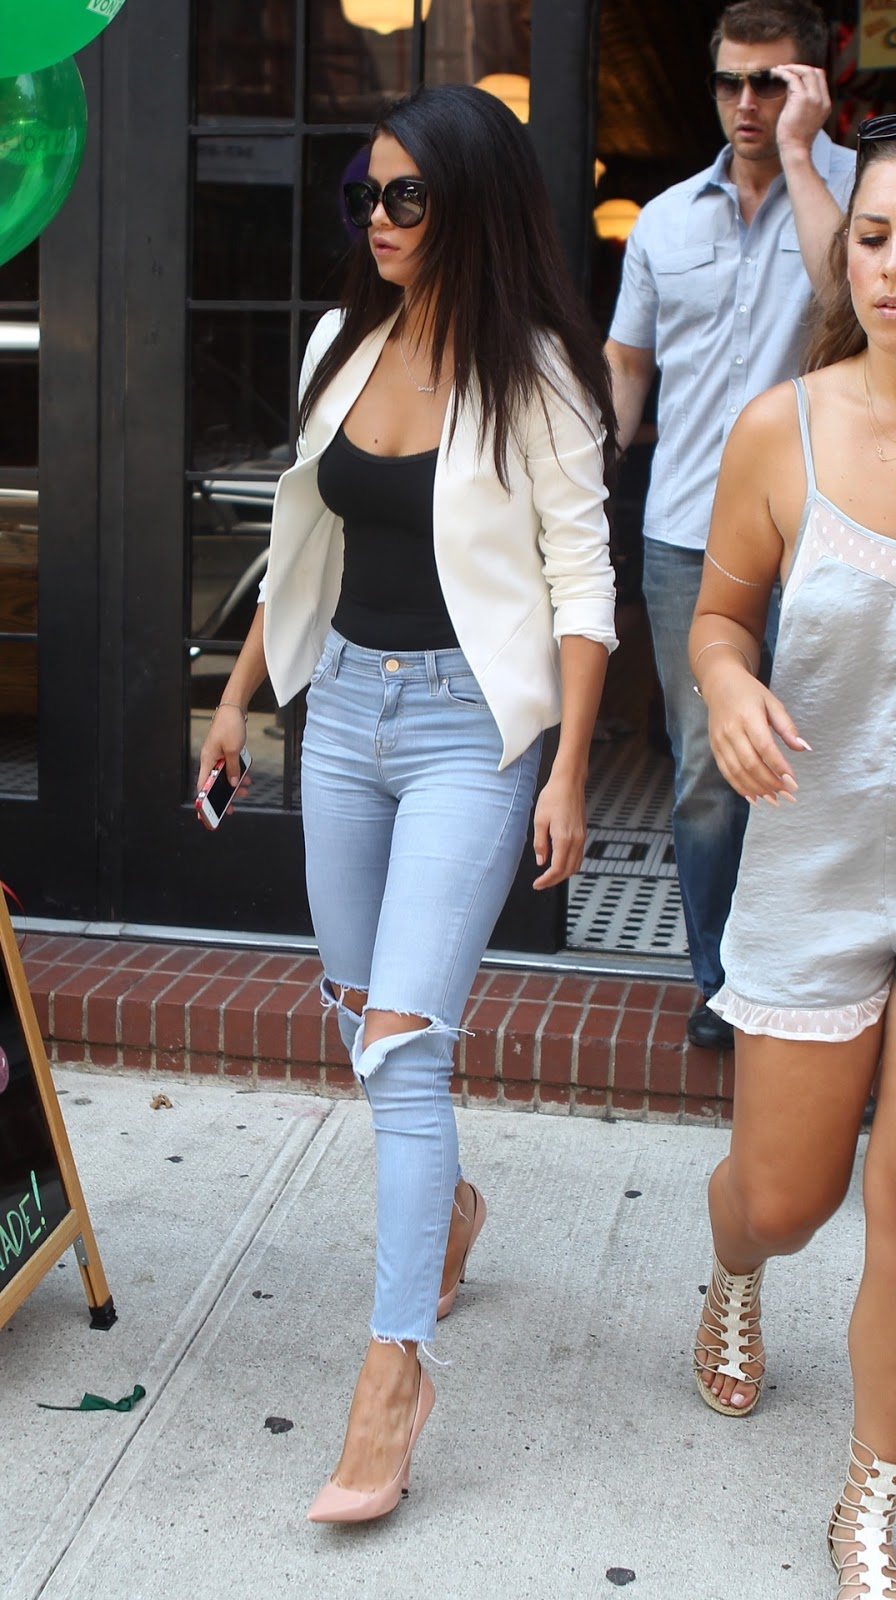 bc462c5c As much as I love Selena wearing her dresses, I love her off duty style  too. The casual ripped jeans and black tank top are basic and are glammed  up ...